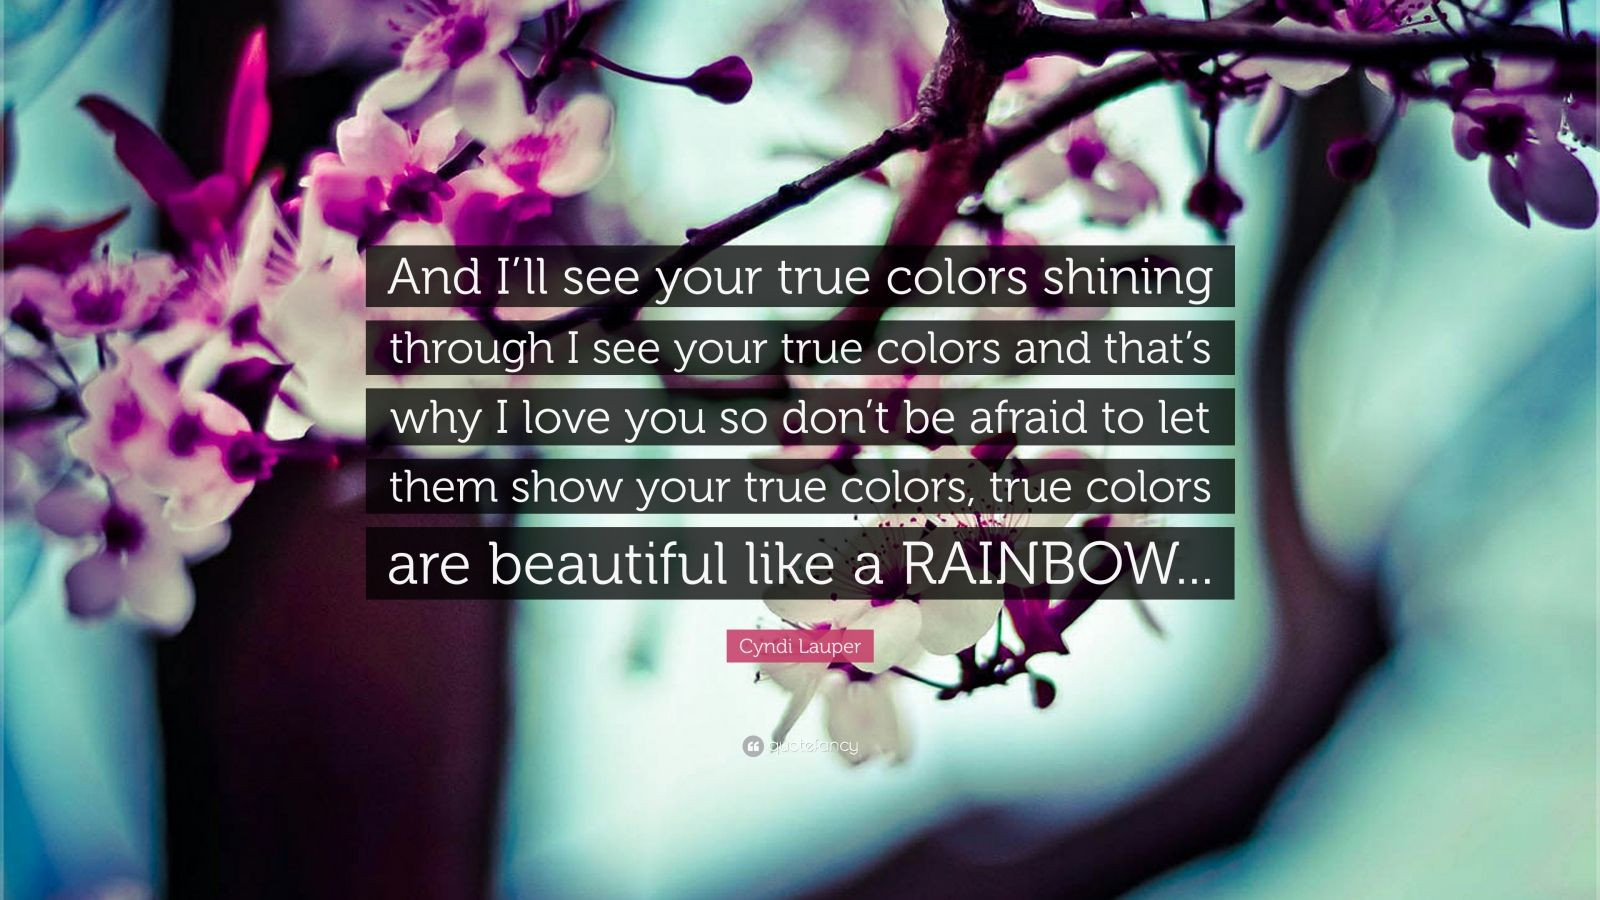 """Cyndi Lauper Quote: """"And I'll see your true colors shining through I see your true colors and that's why I love you so don't be afraid to let them show your true colors, true colors are beautiful like a RAINBOW..."""""""